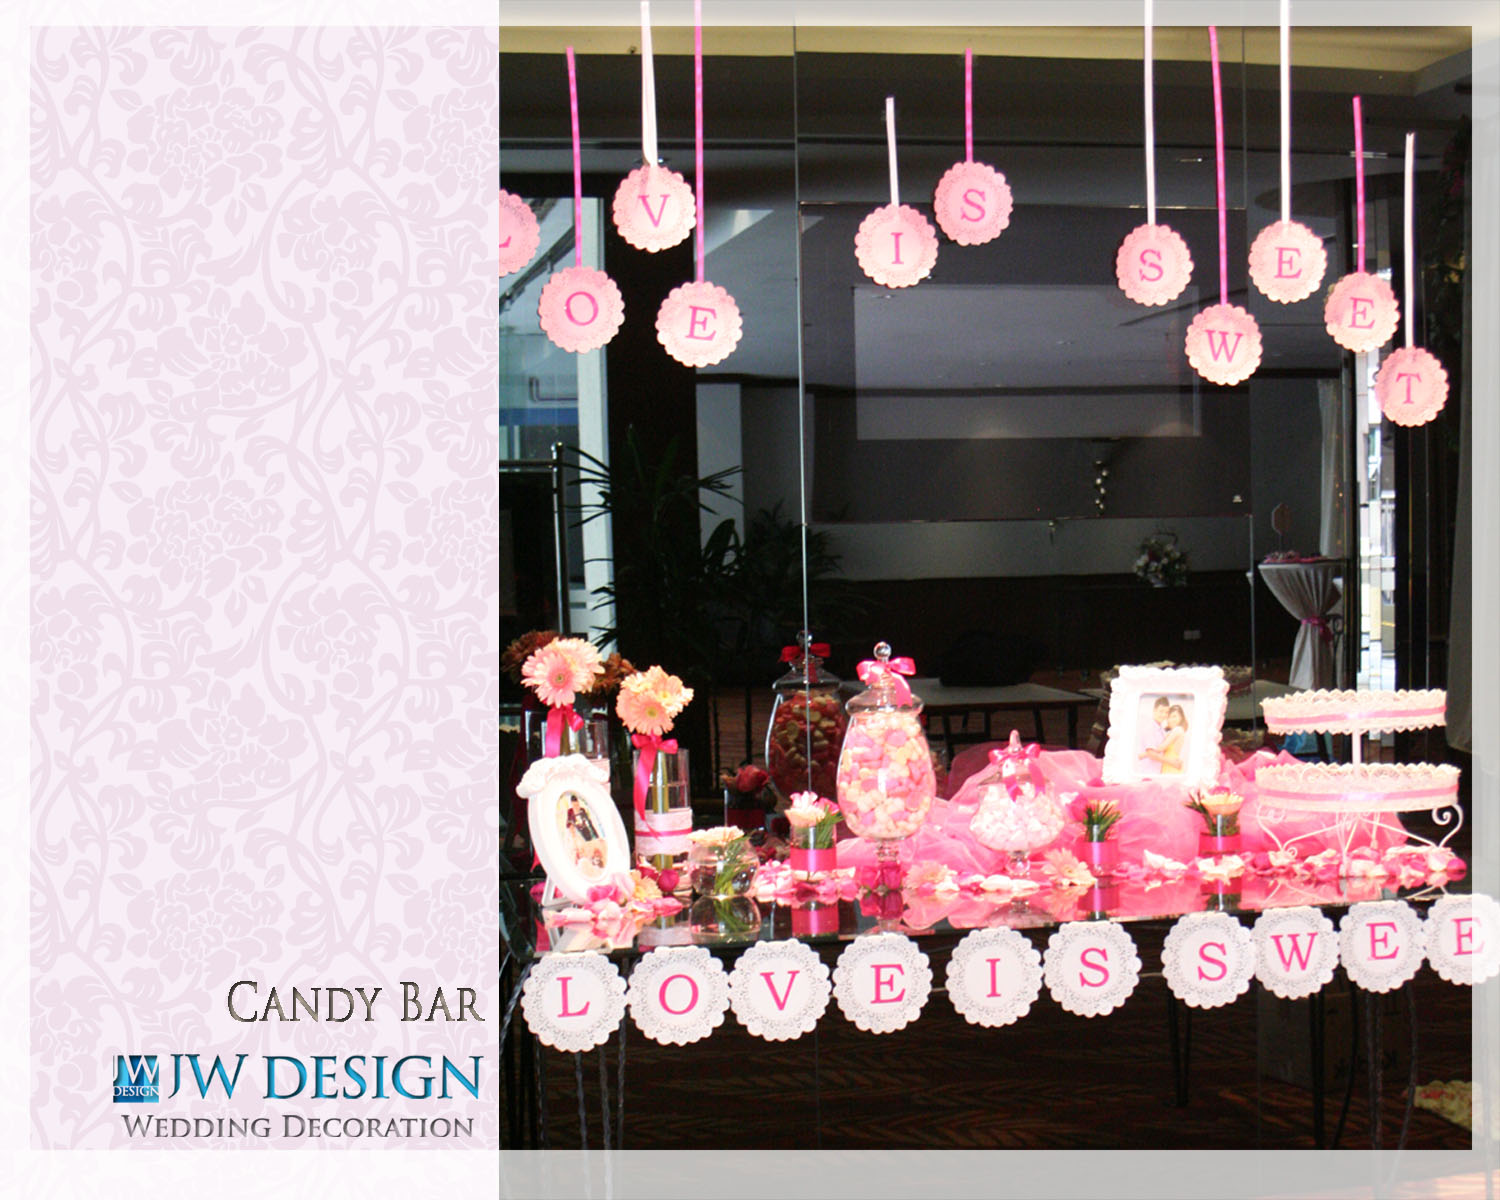 jw design wedding decoration candy bar. Black Bedroom Furniture Sets. Home Design Ideas